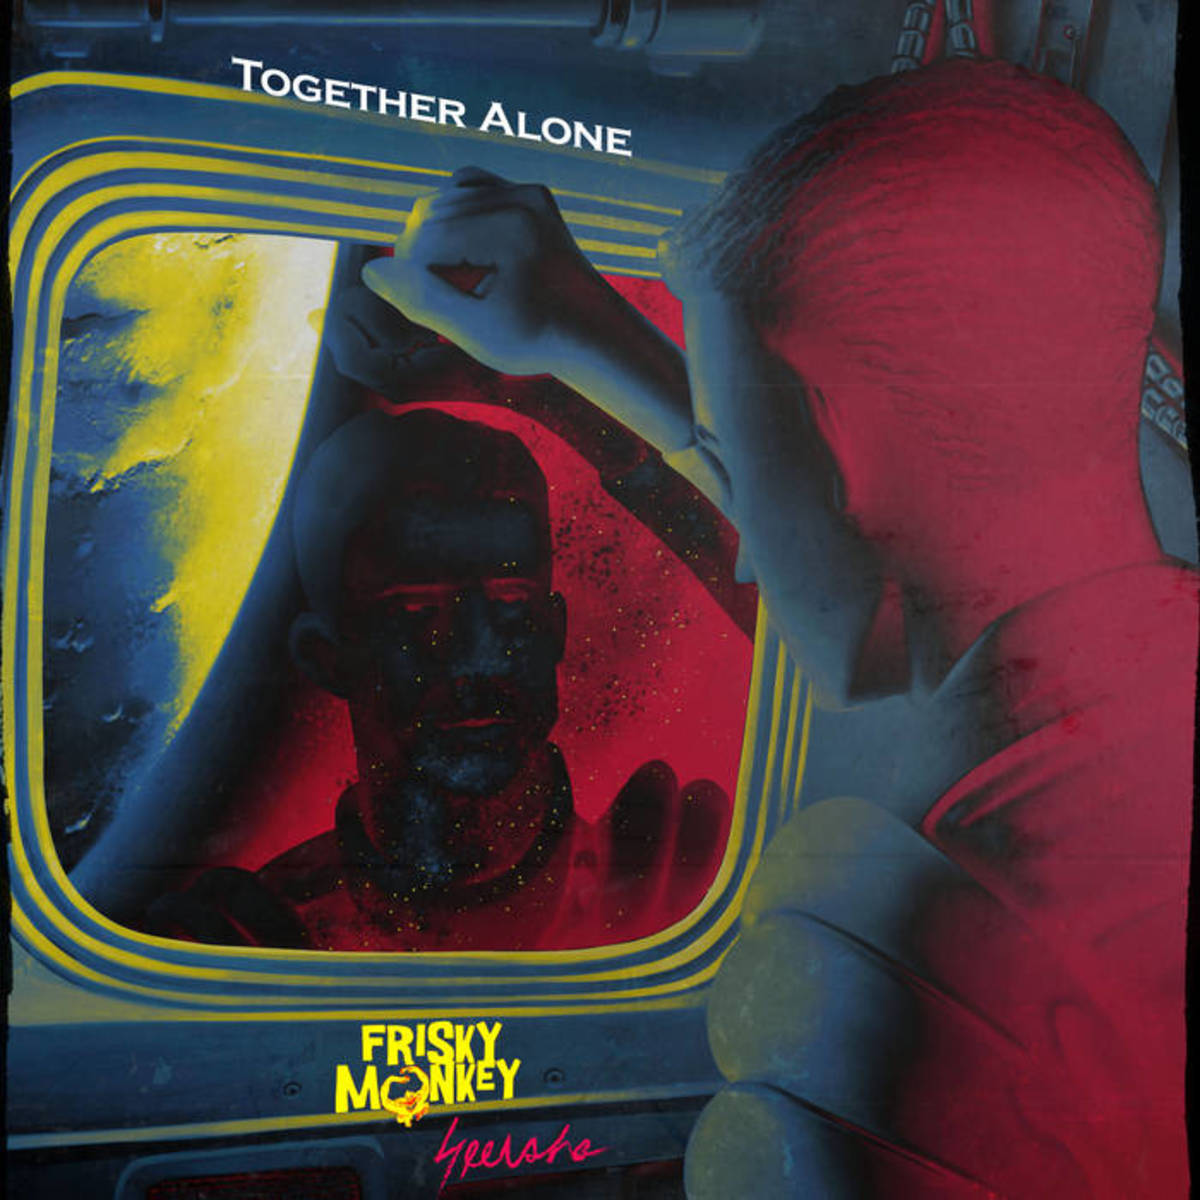 synthpop-single-review-together-alone-by-frisky-monkey-feat-seersha